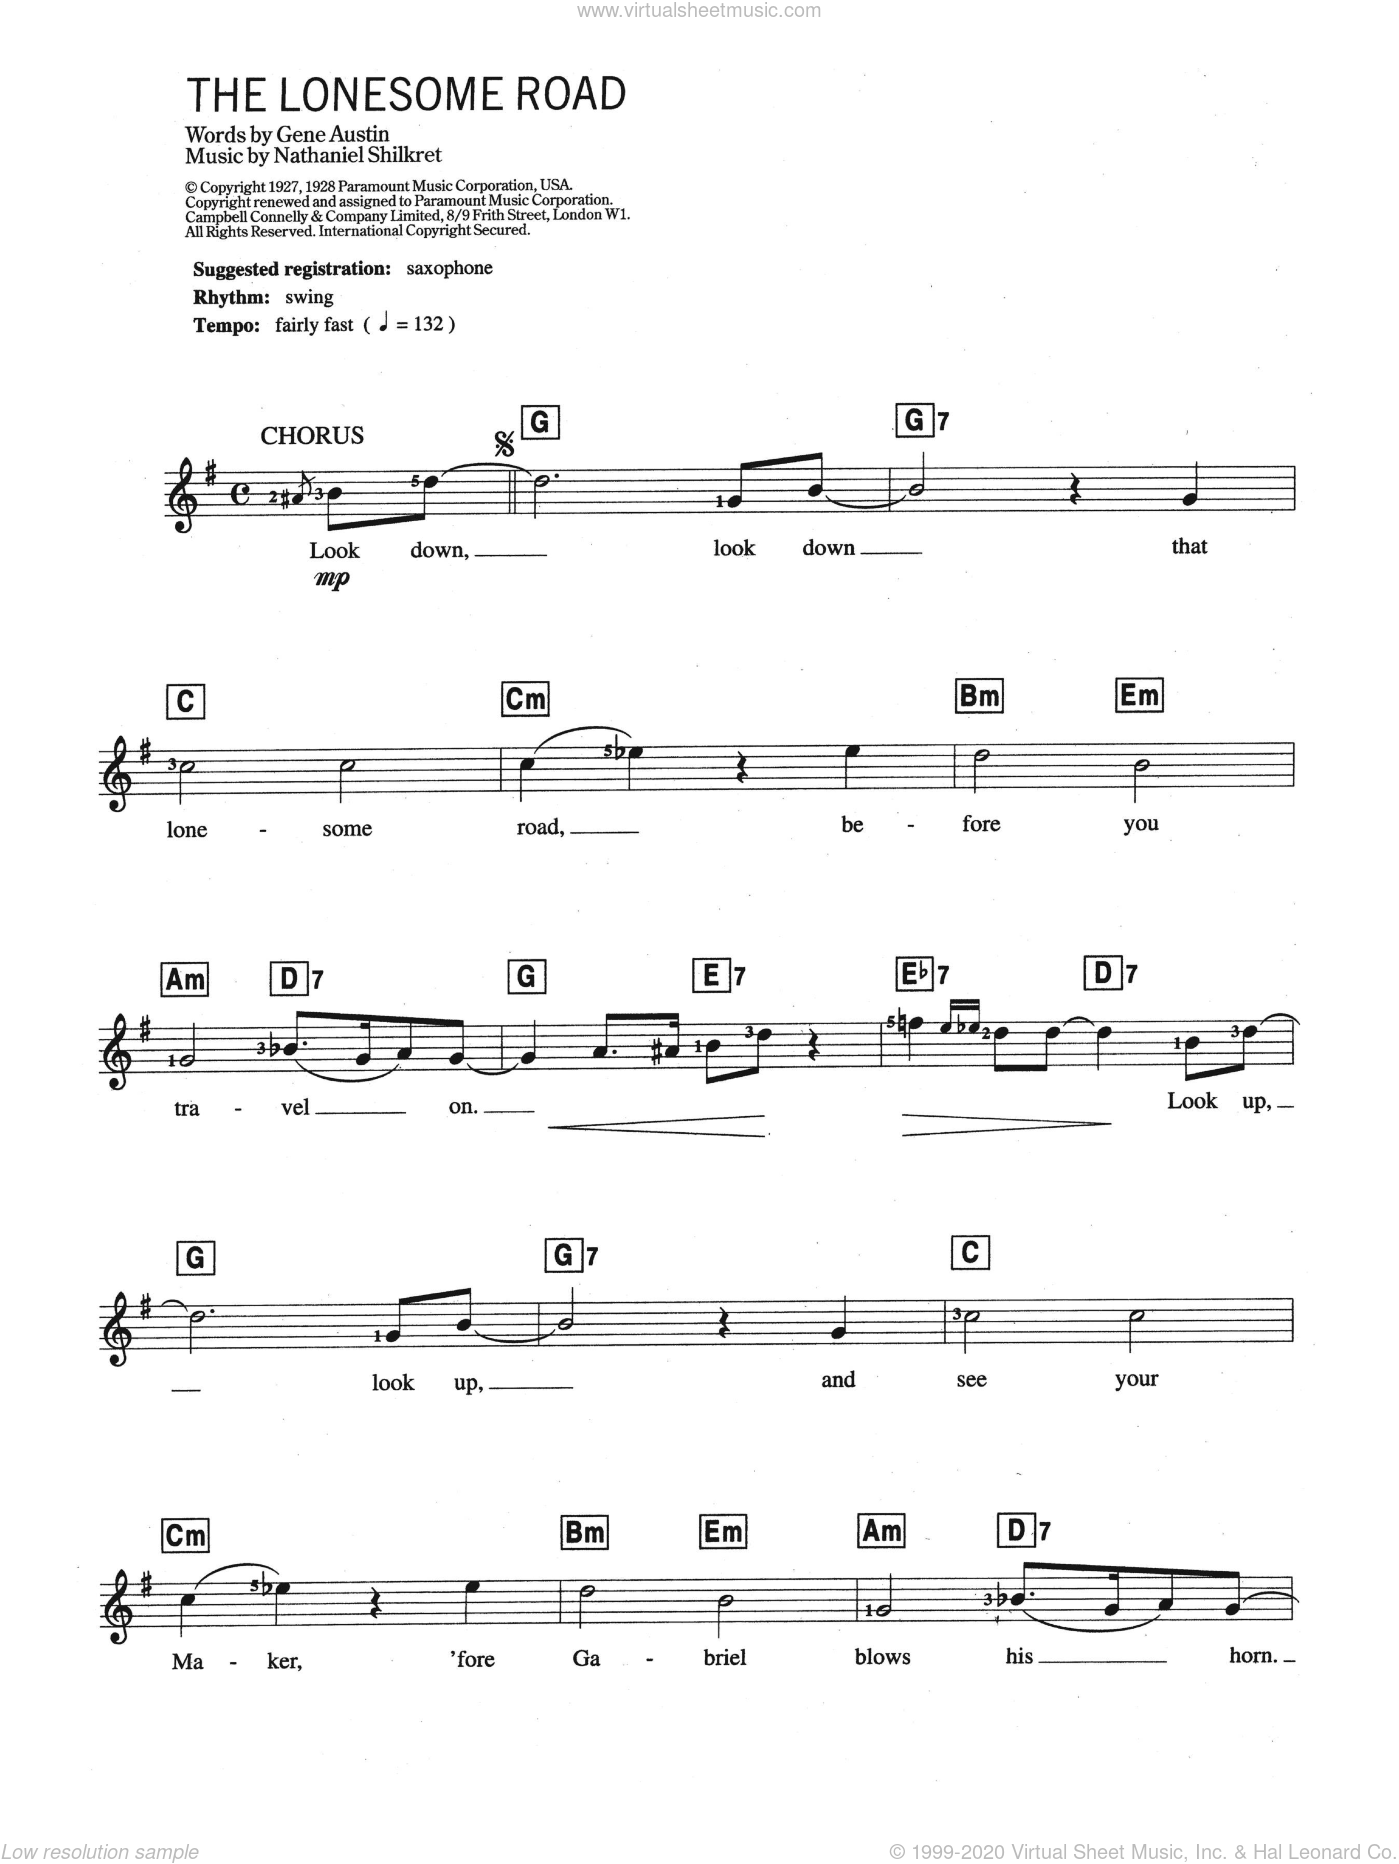 Austin - Lonesome Road sheet music for piano solo (chords, lyrics, melody)